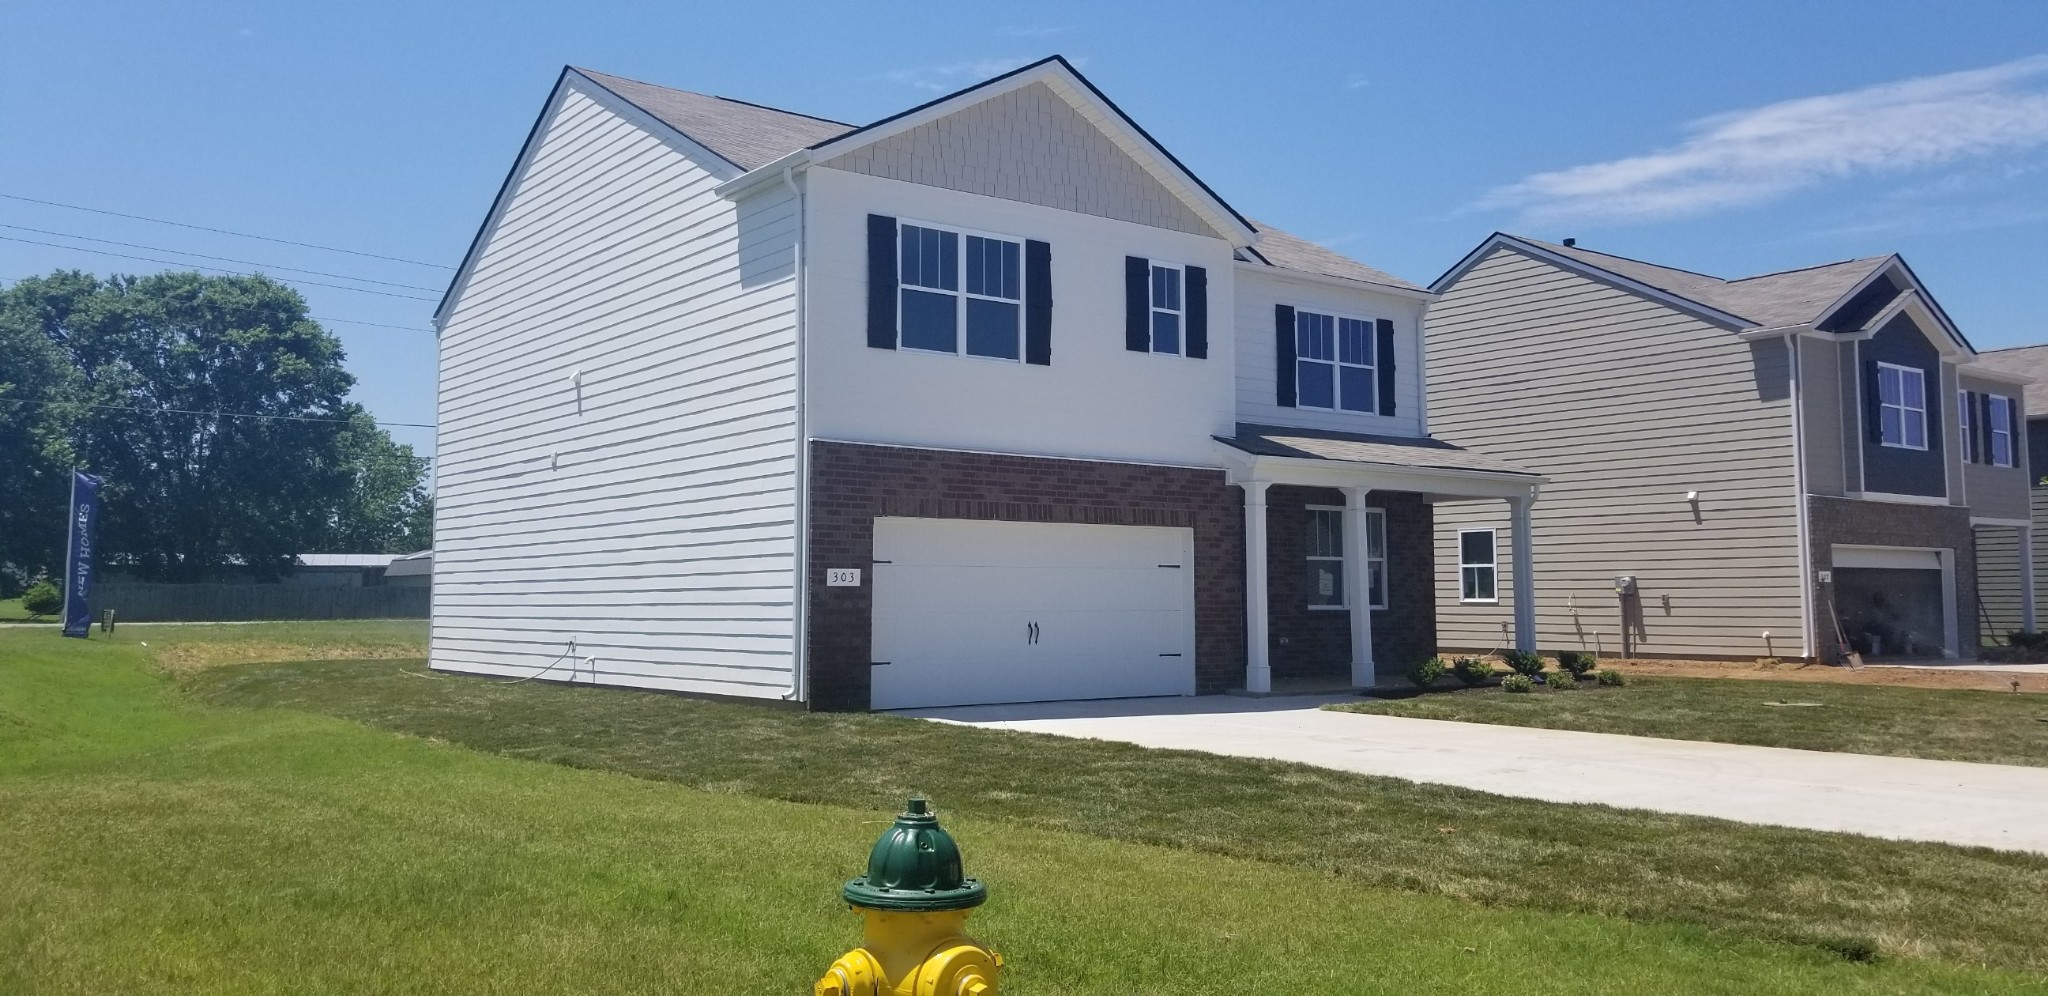 Location qualifies for USDA $0 down loan (closing cost apply, builder incentive 5k toward cc w/DHI Mortgage) Aria-3/2, Open floor plan, 9' ceilings, lots of natural light & spaceous. Gas appliances, underground utilites, amenities center up and ready for use. 5 Minutes to 840, 15 minutes to Nissan & VA. Country Setting.